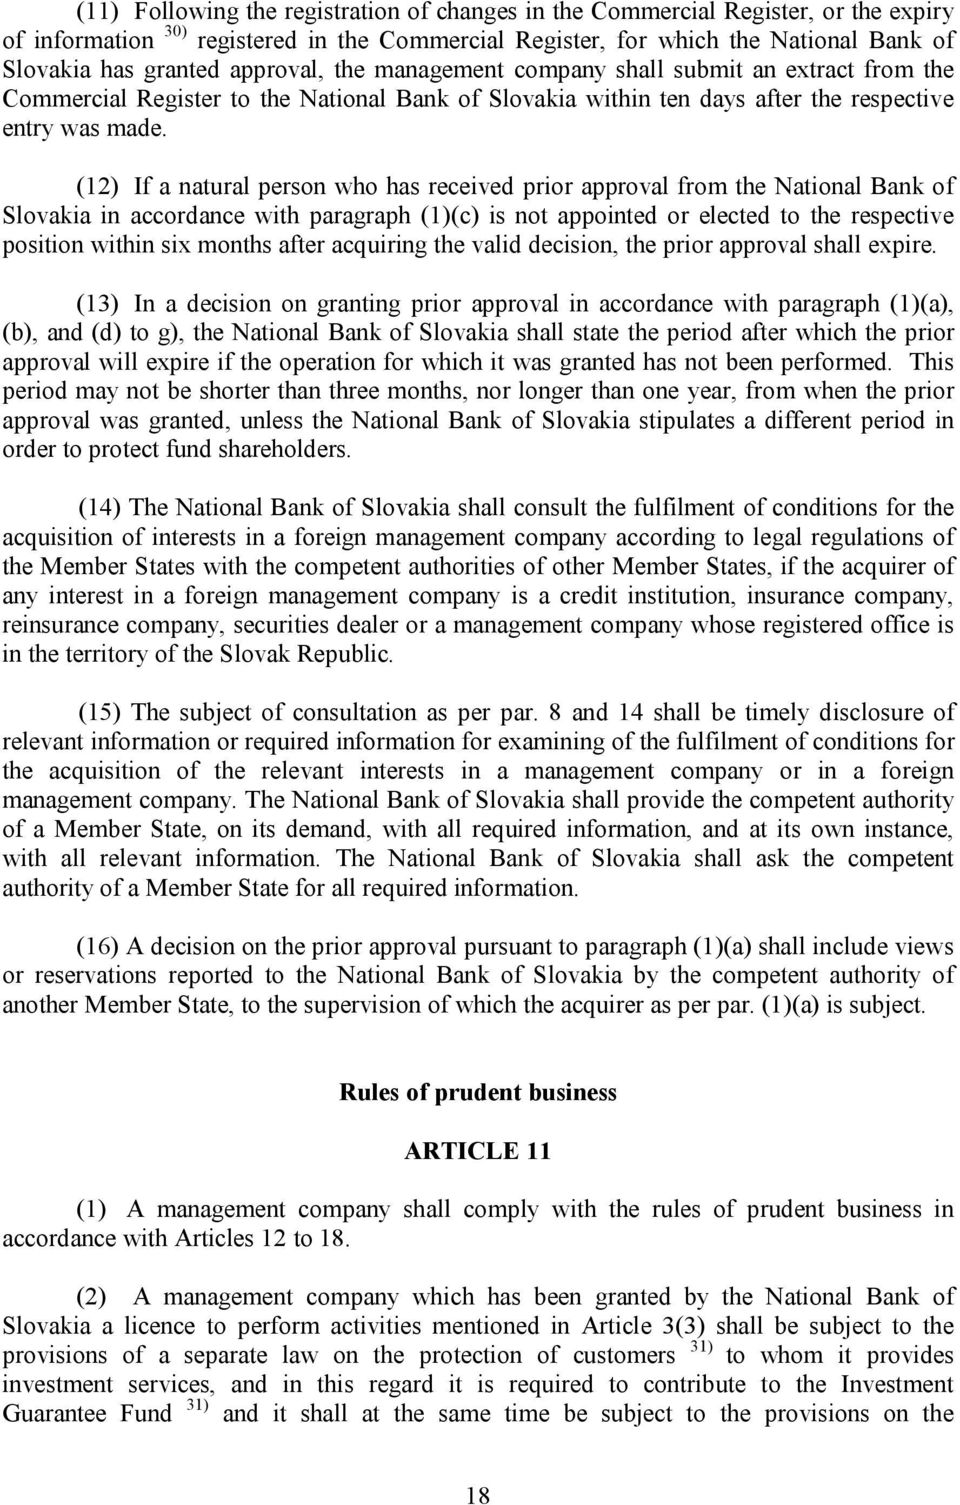 (12) If a natural person who has received prior approval from the National Bank of Slovakia in accordance with paragraph (1)(c) is not appointed or elected to the respective position within six